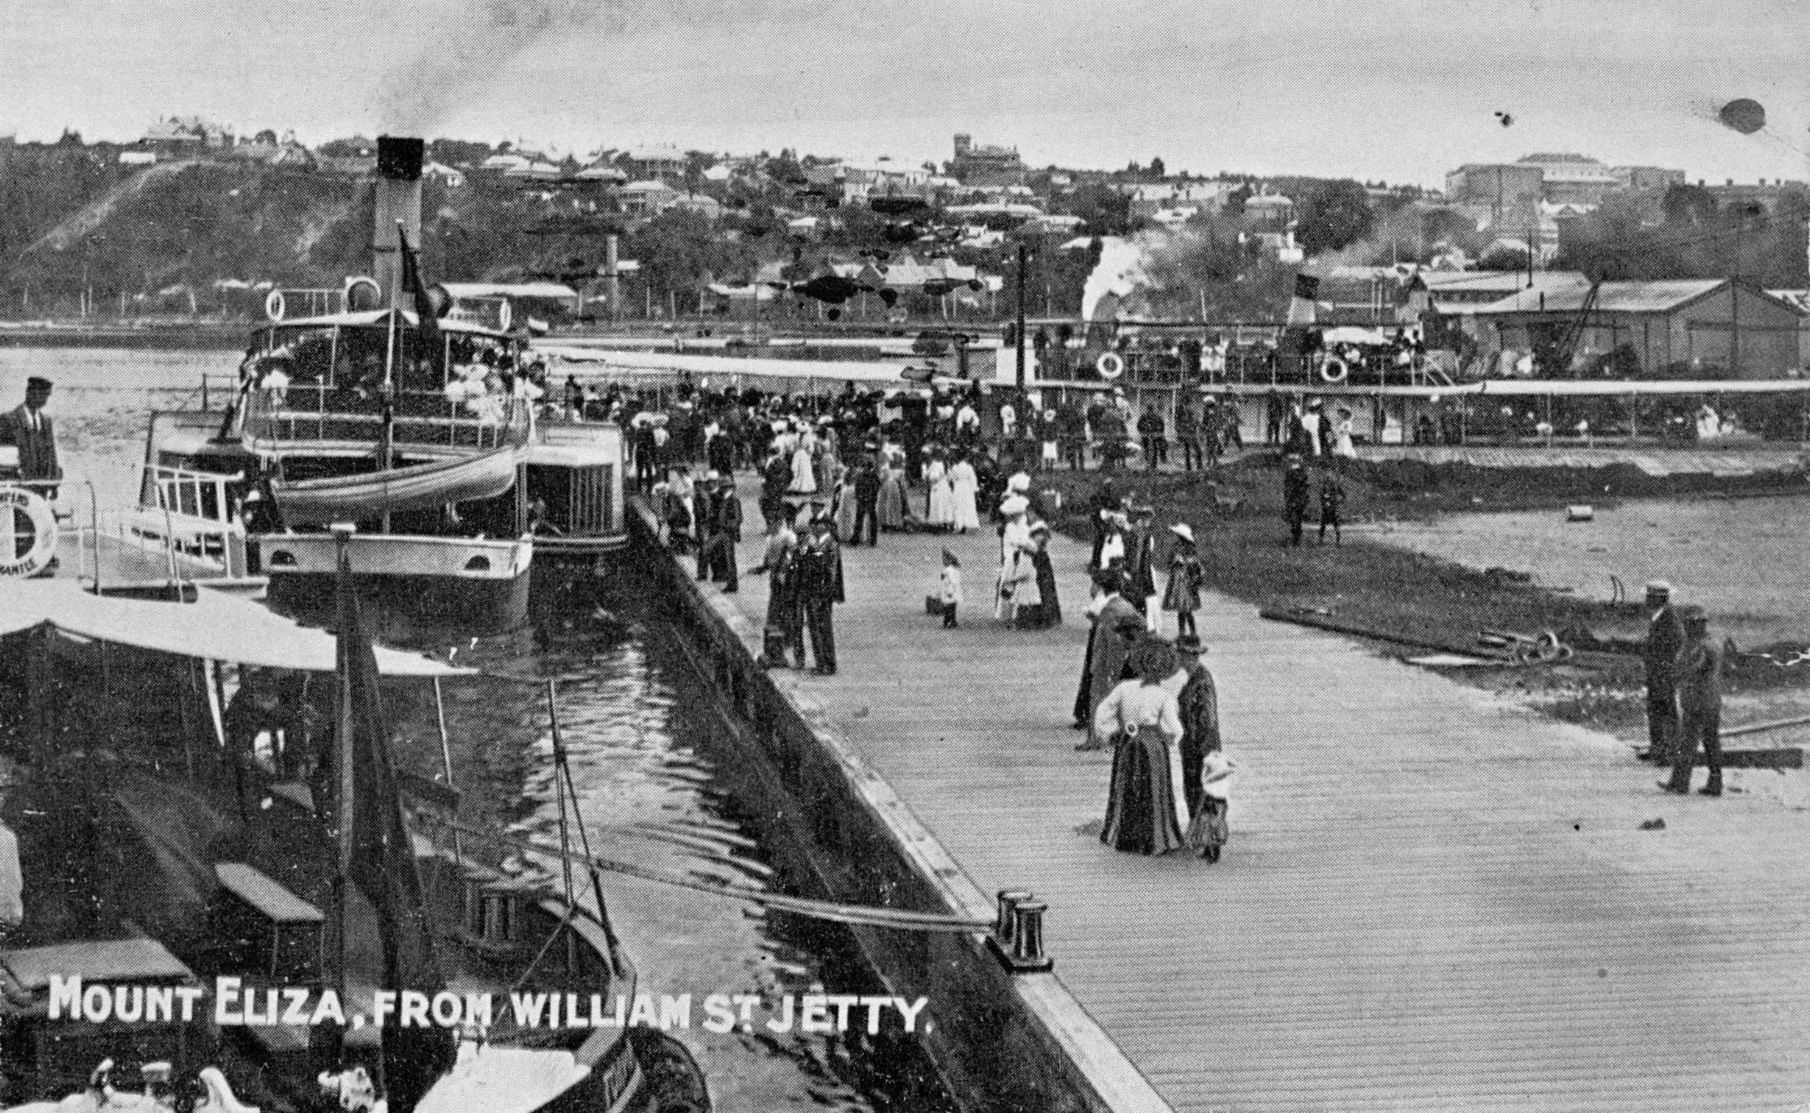 Mount Eliza from William Street jetty (looking West) Courtesy of the State Library of Western Australia (066606PD)